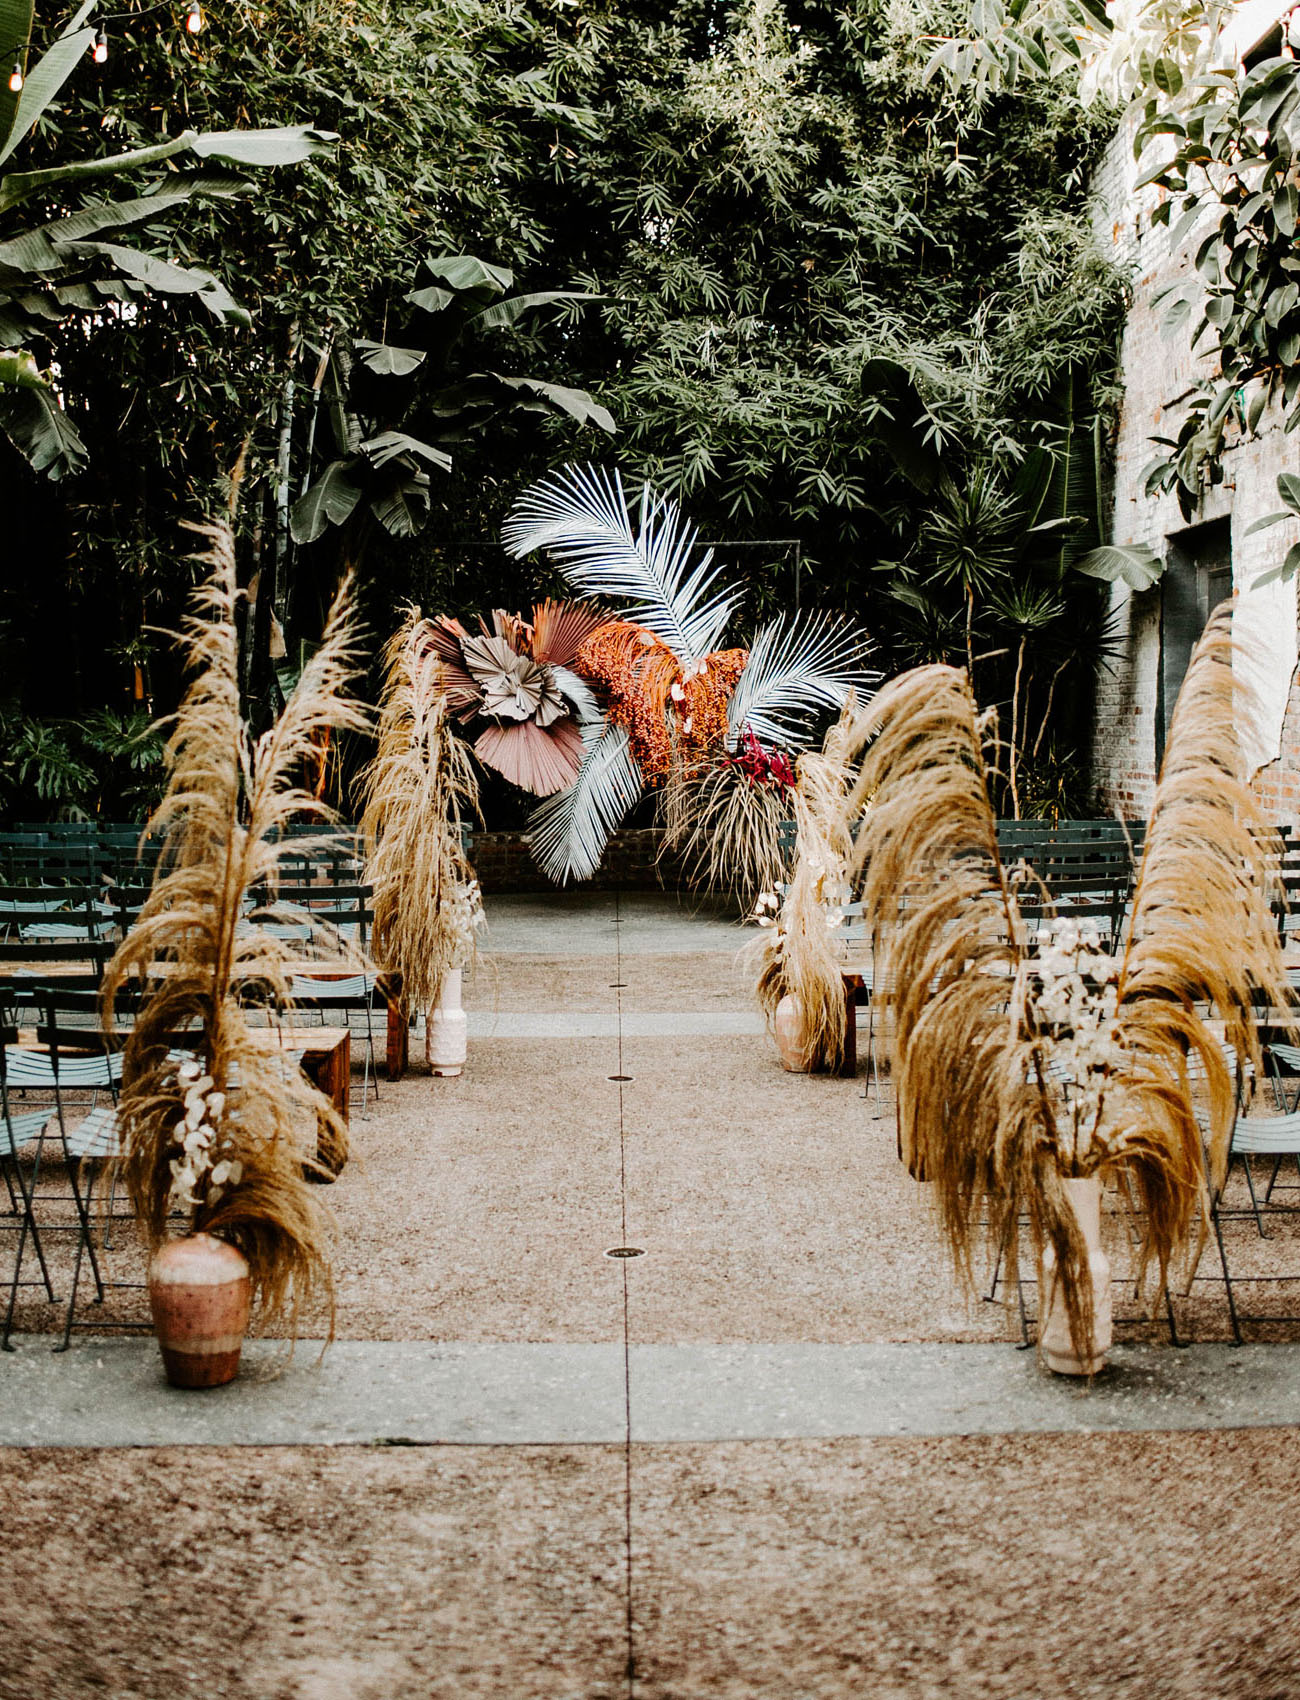 The wedding ceremony space was done with dried grasses, large tropical leaves and terra cotta vases